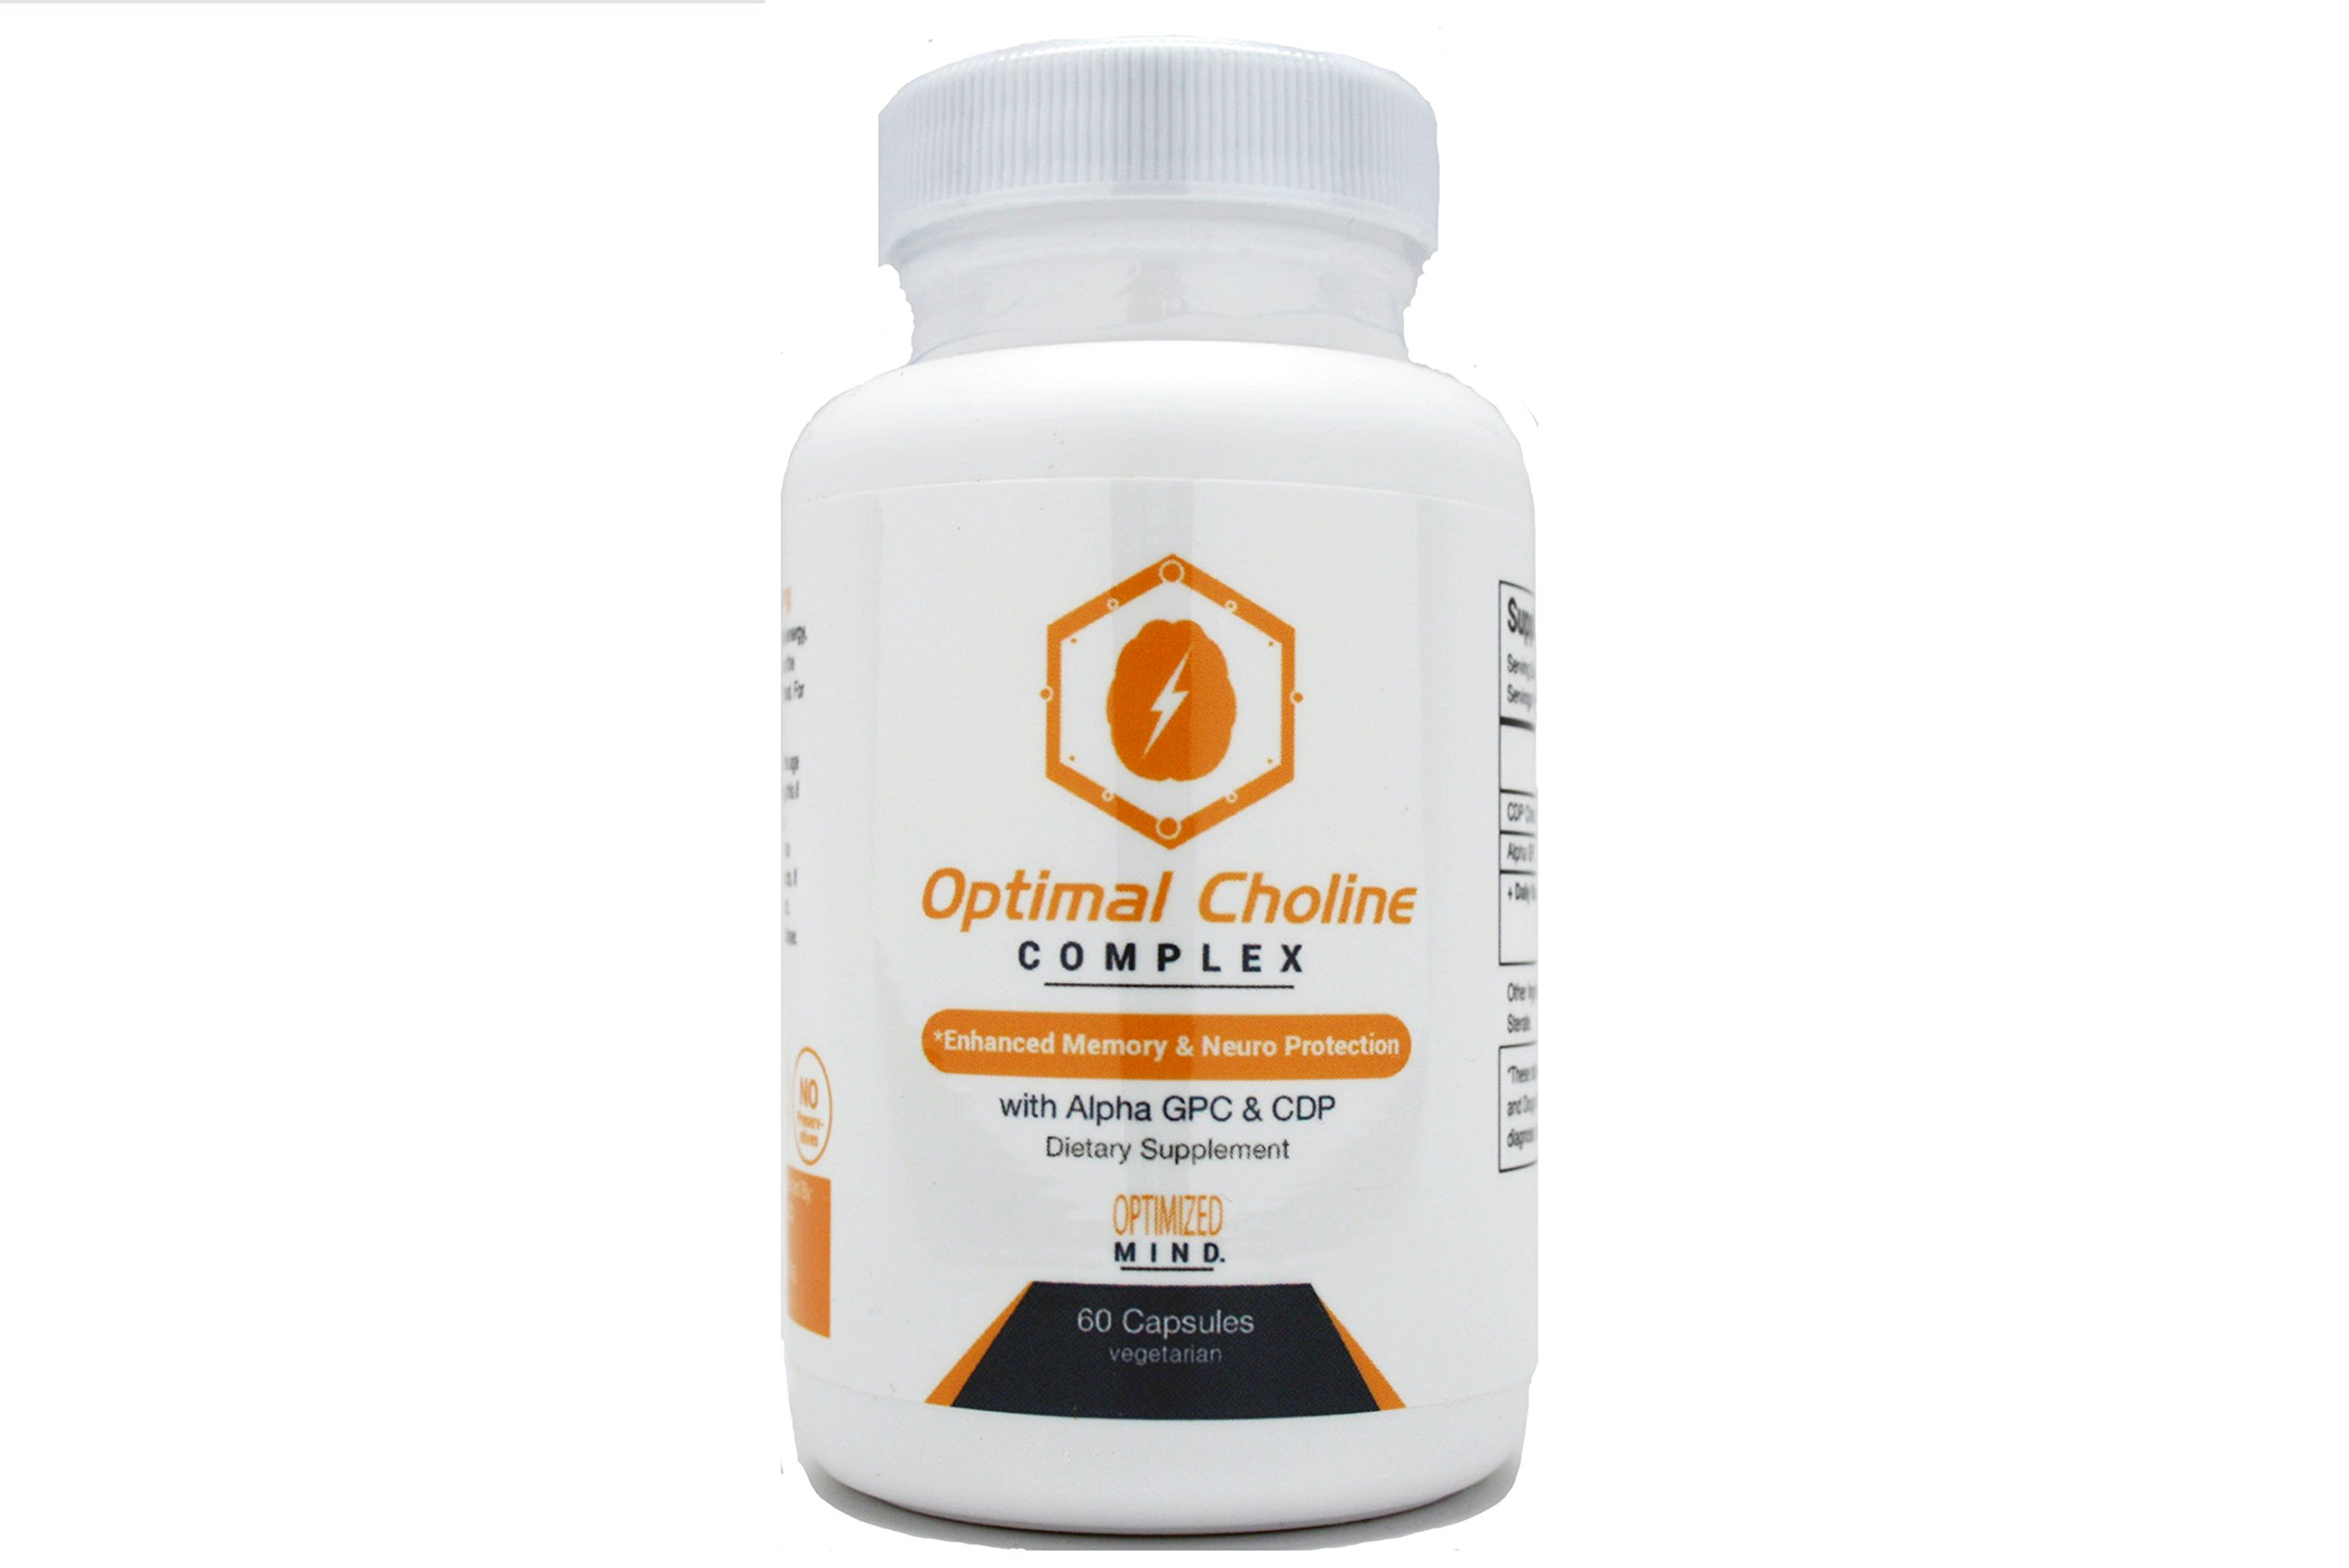 Optimal Choline Complex - Alpha GPC / Citicholine Blend - 300 mg Choline Supplement